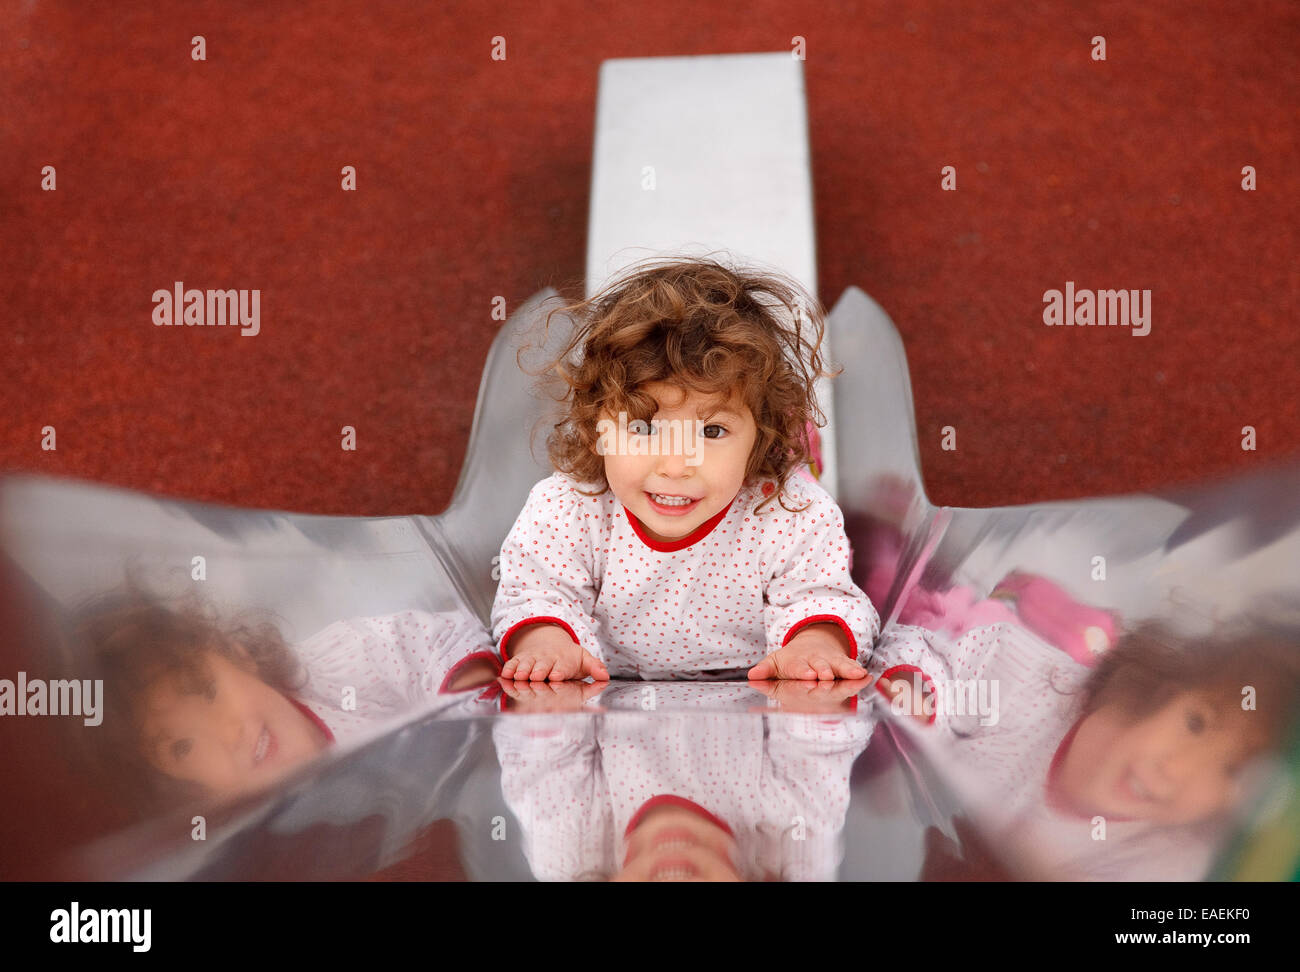 A two year old toddler girl on a slide - Stock Image